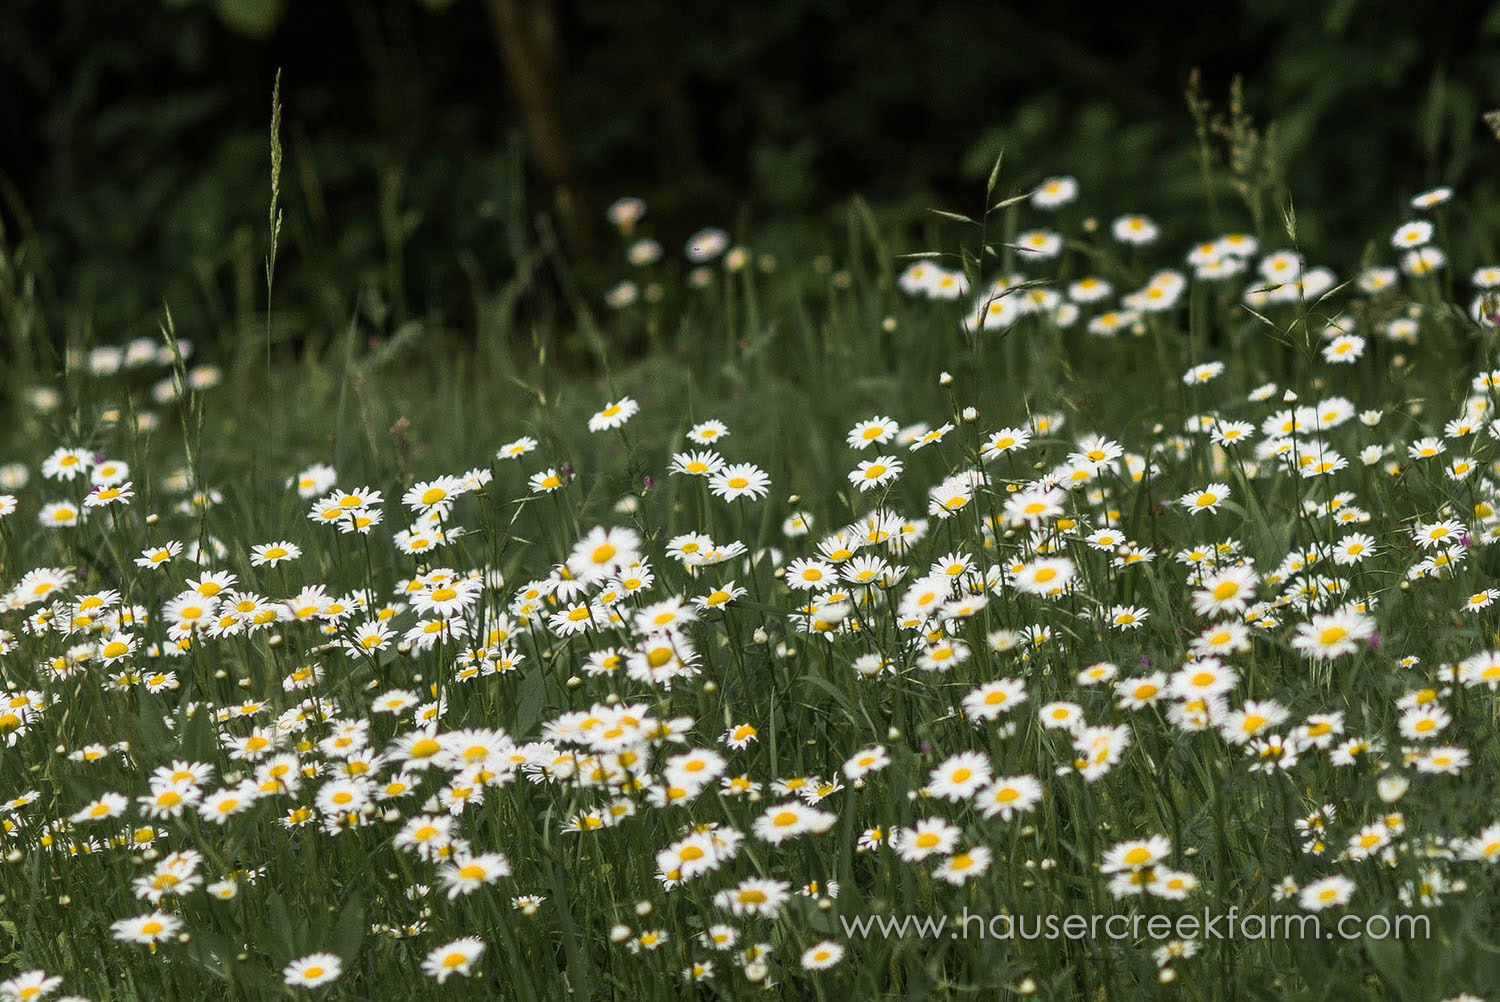 field-of-wild-daisies-at-hauser-creek-farm_2017_721.jpg